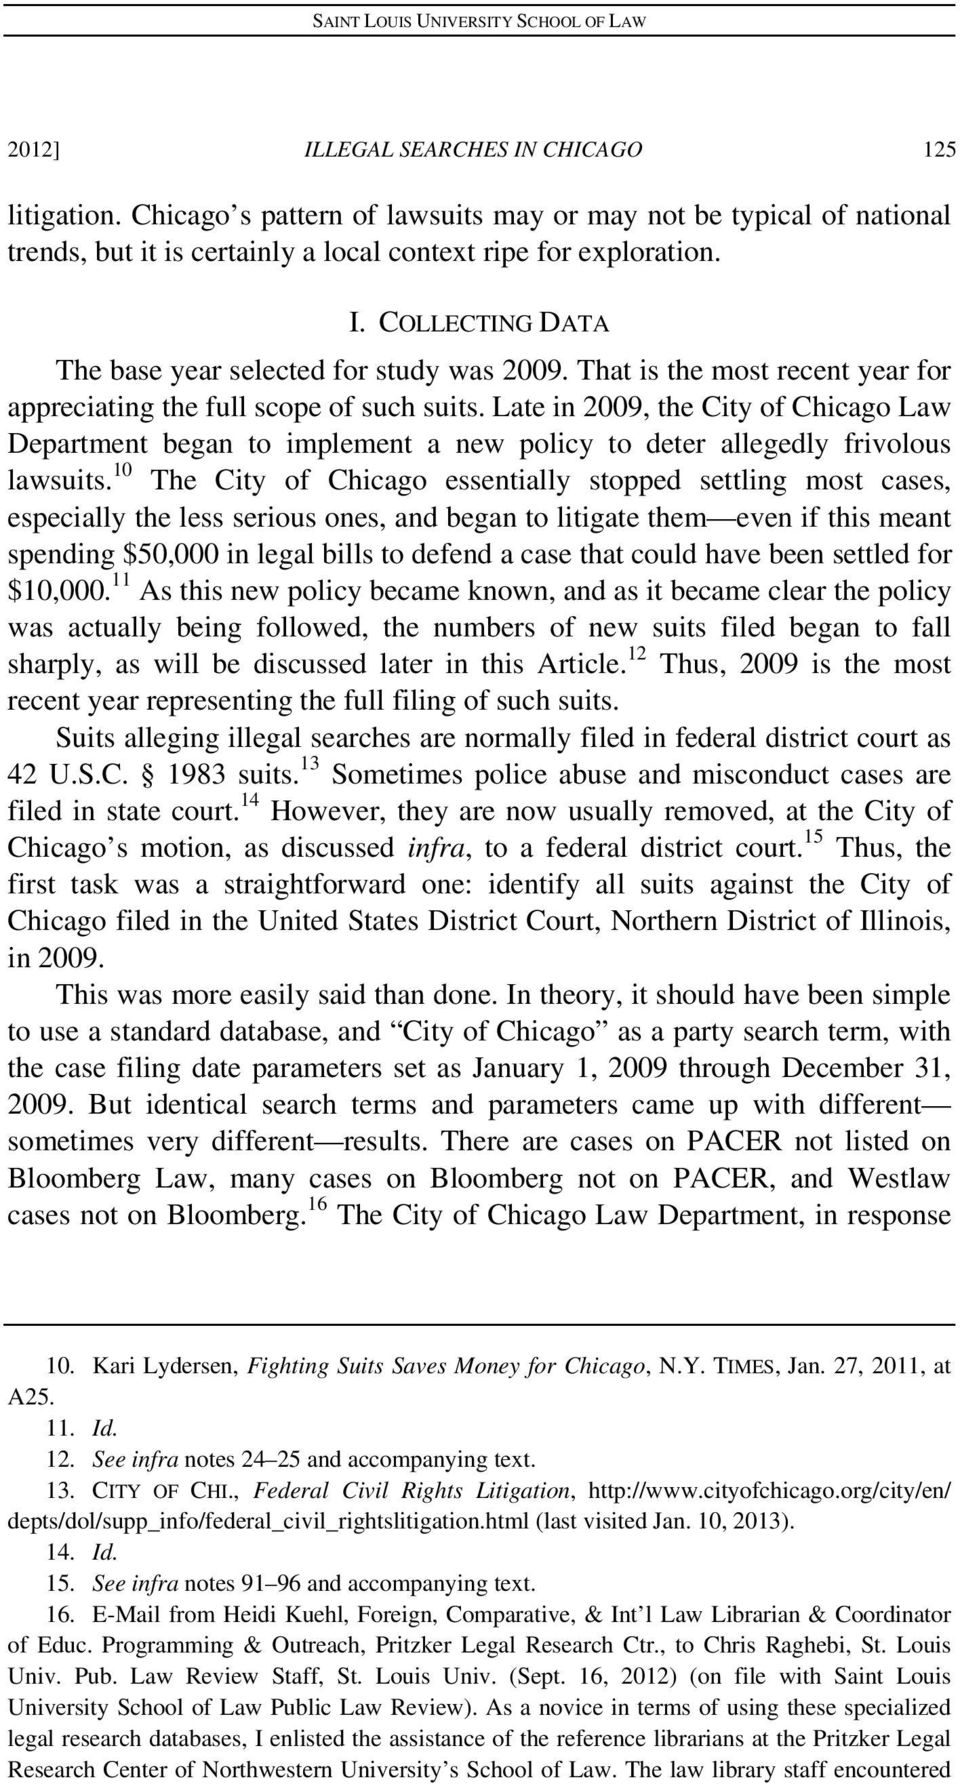 10 The City of Chicago essentially stopped settling most cases, especially the less serious ones, and began to litigate them even if this meant spending $50,000 in legal bills to defend a case that